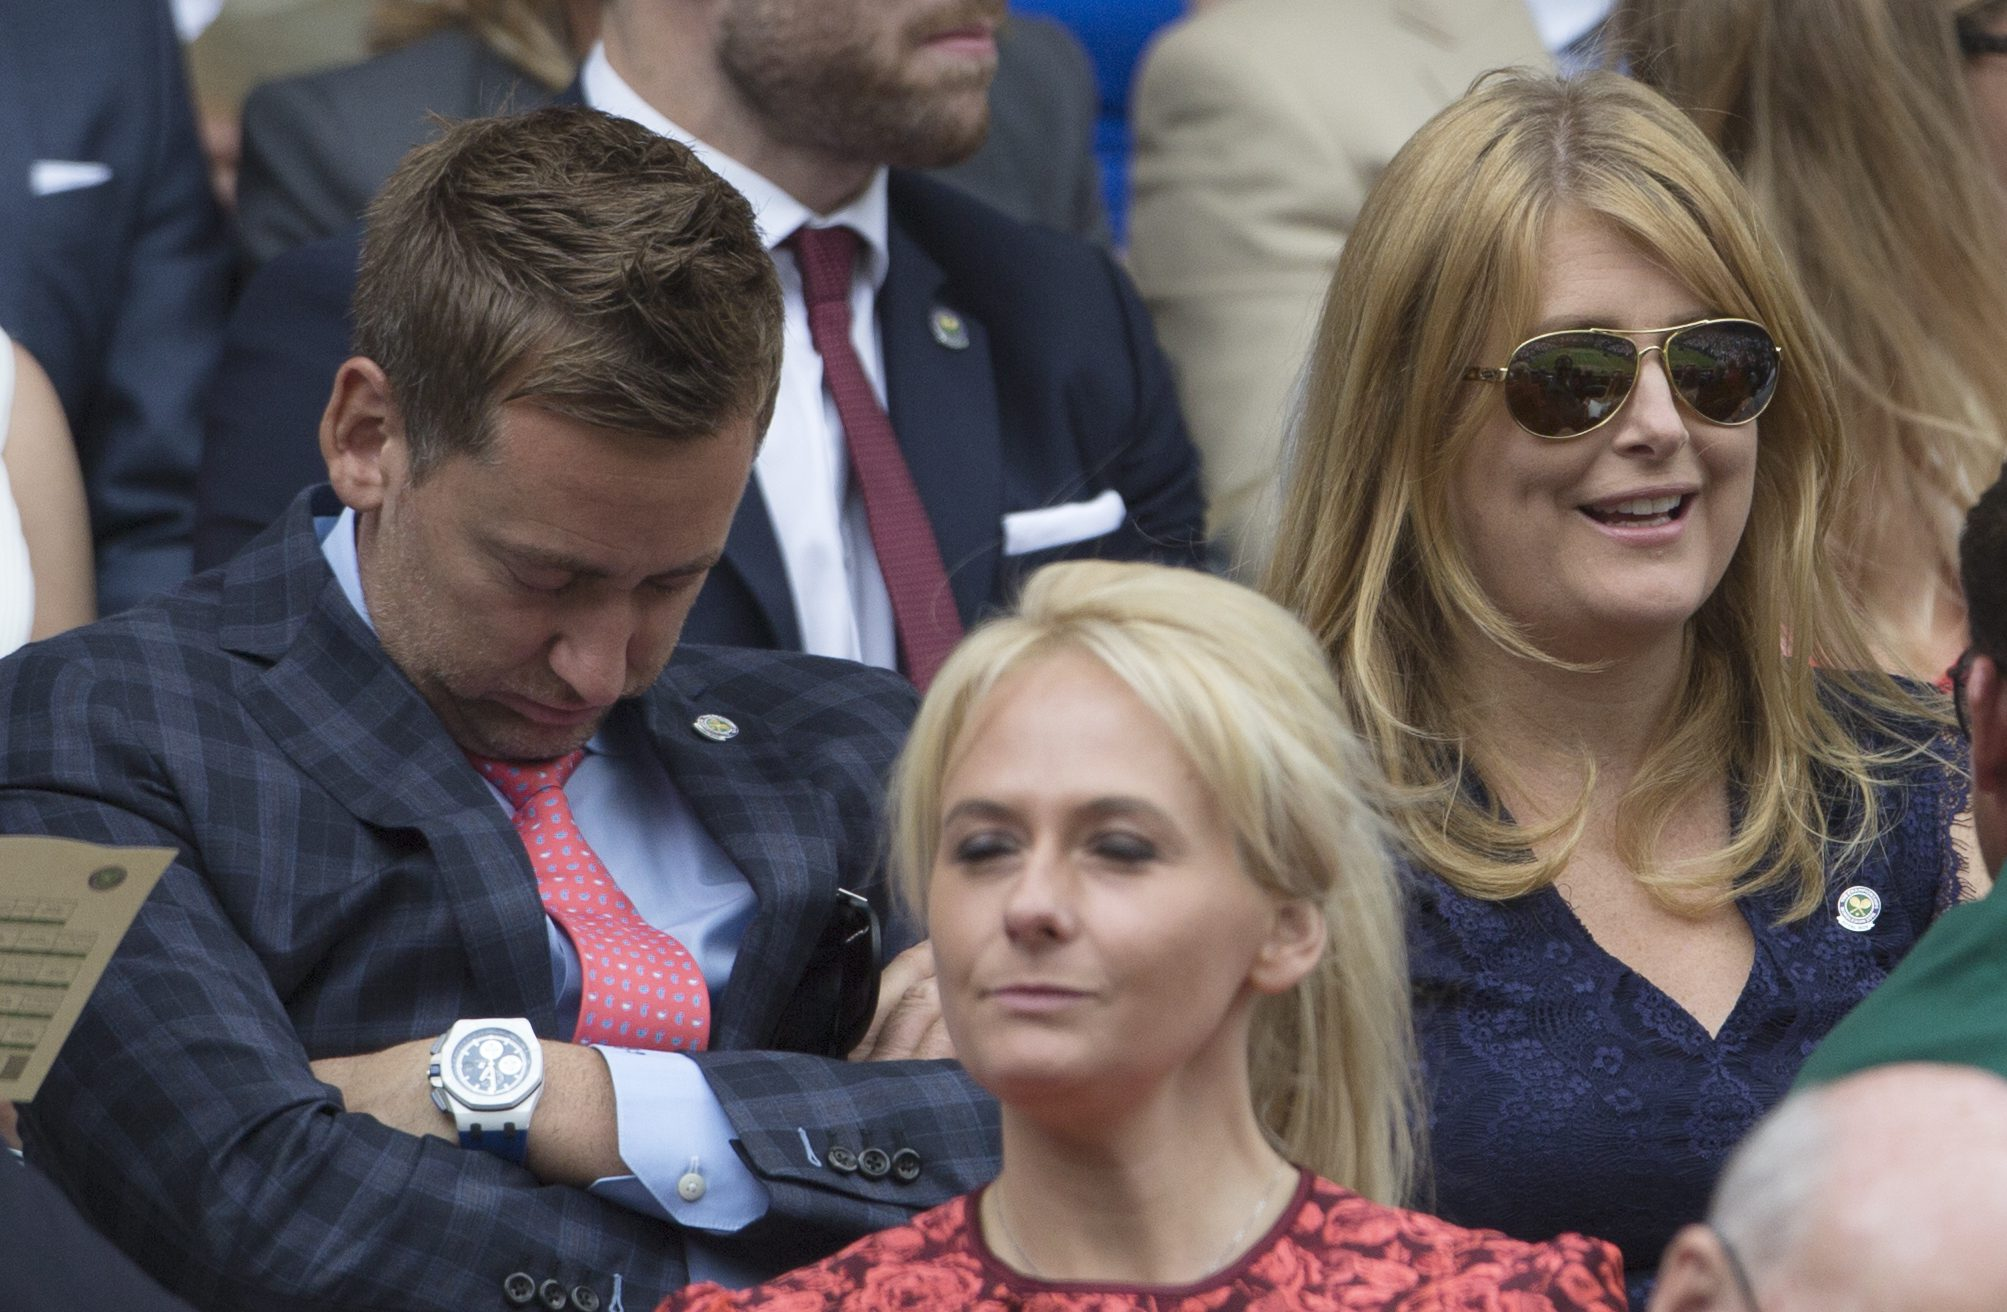 Poulter nods off while Katie stays glued to the tennis at Centre Court